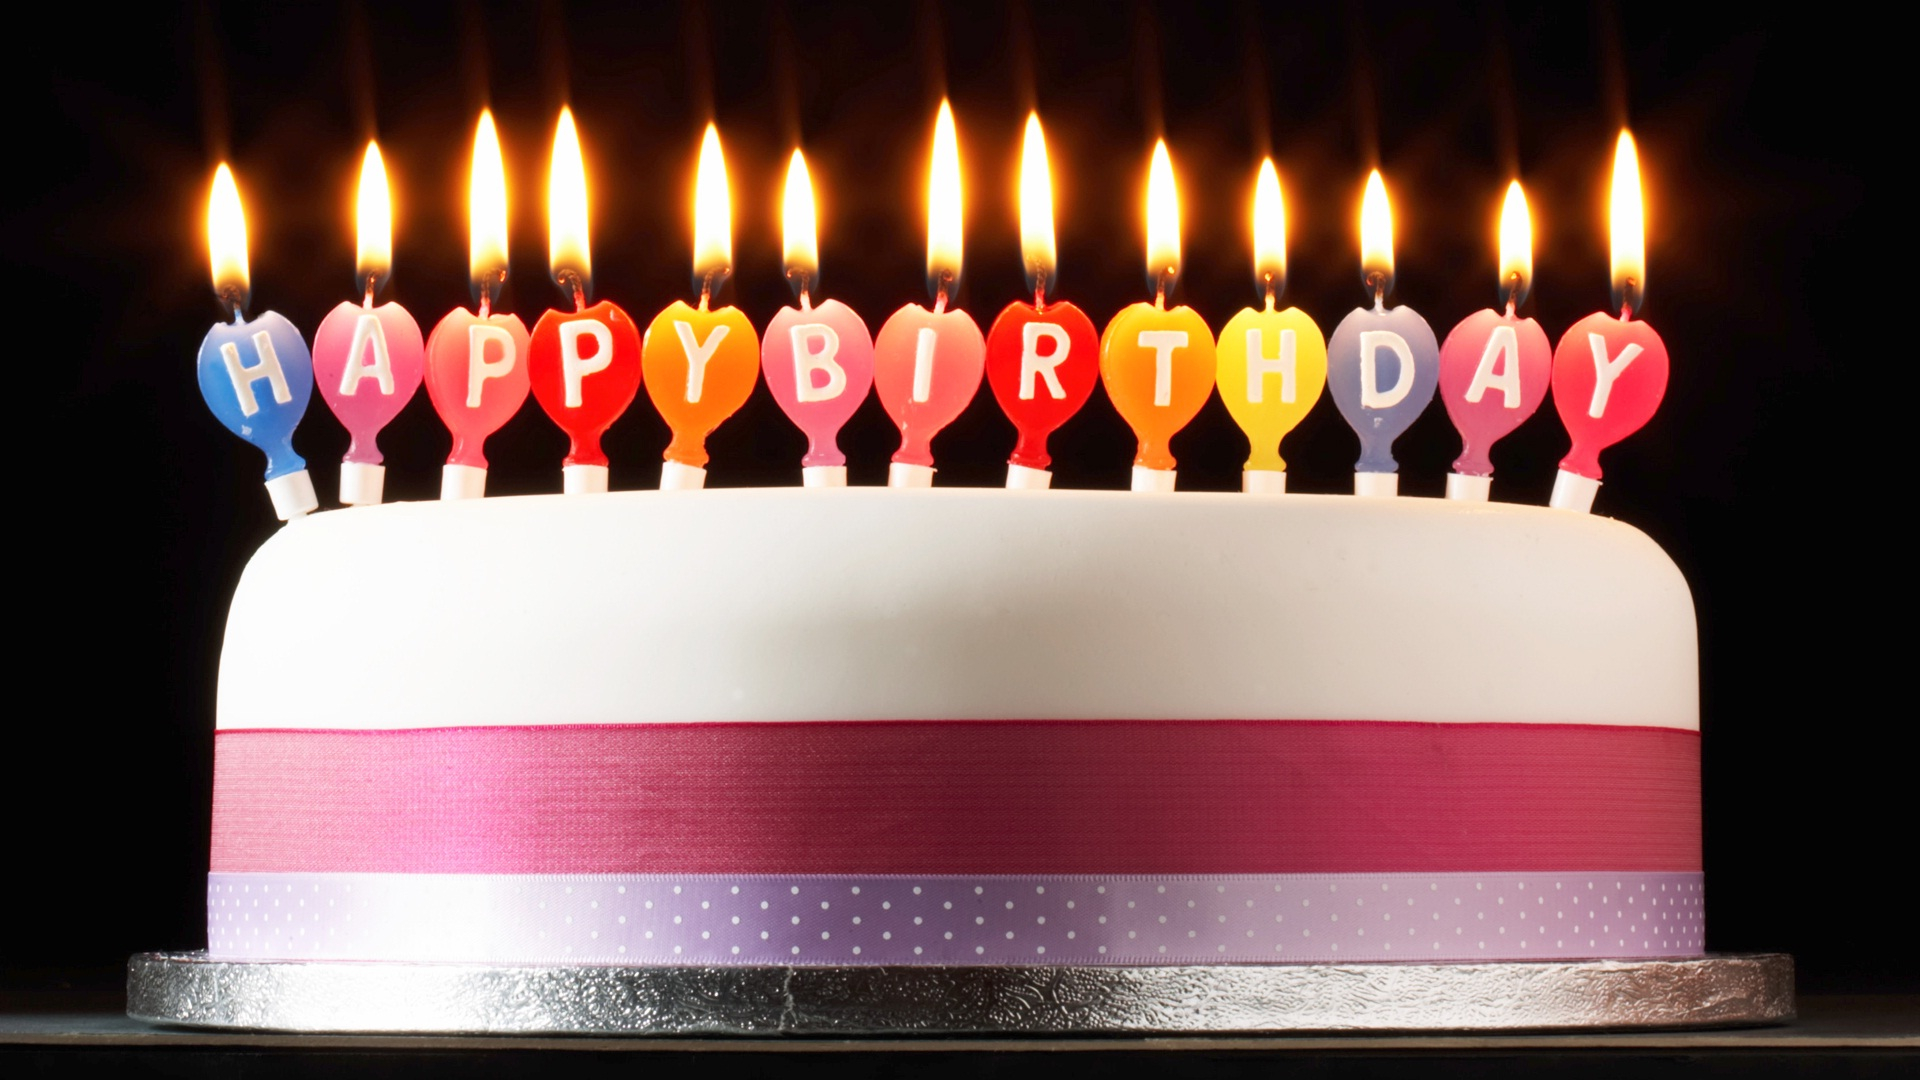 Happy Birthday Cake With Candles 9 With Candles Cakes Happy Birthday Quote Photo Happy Birthday